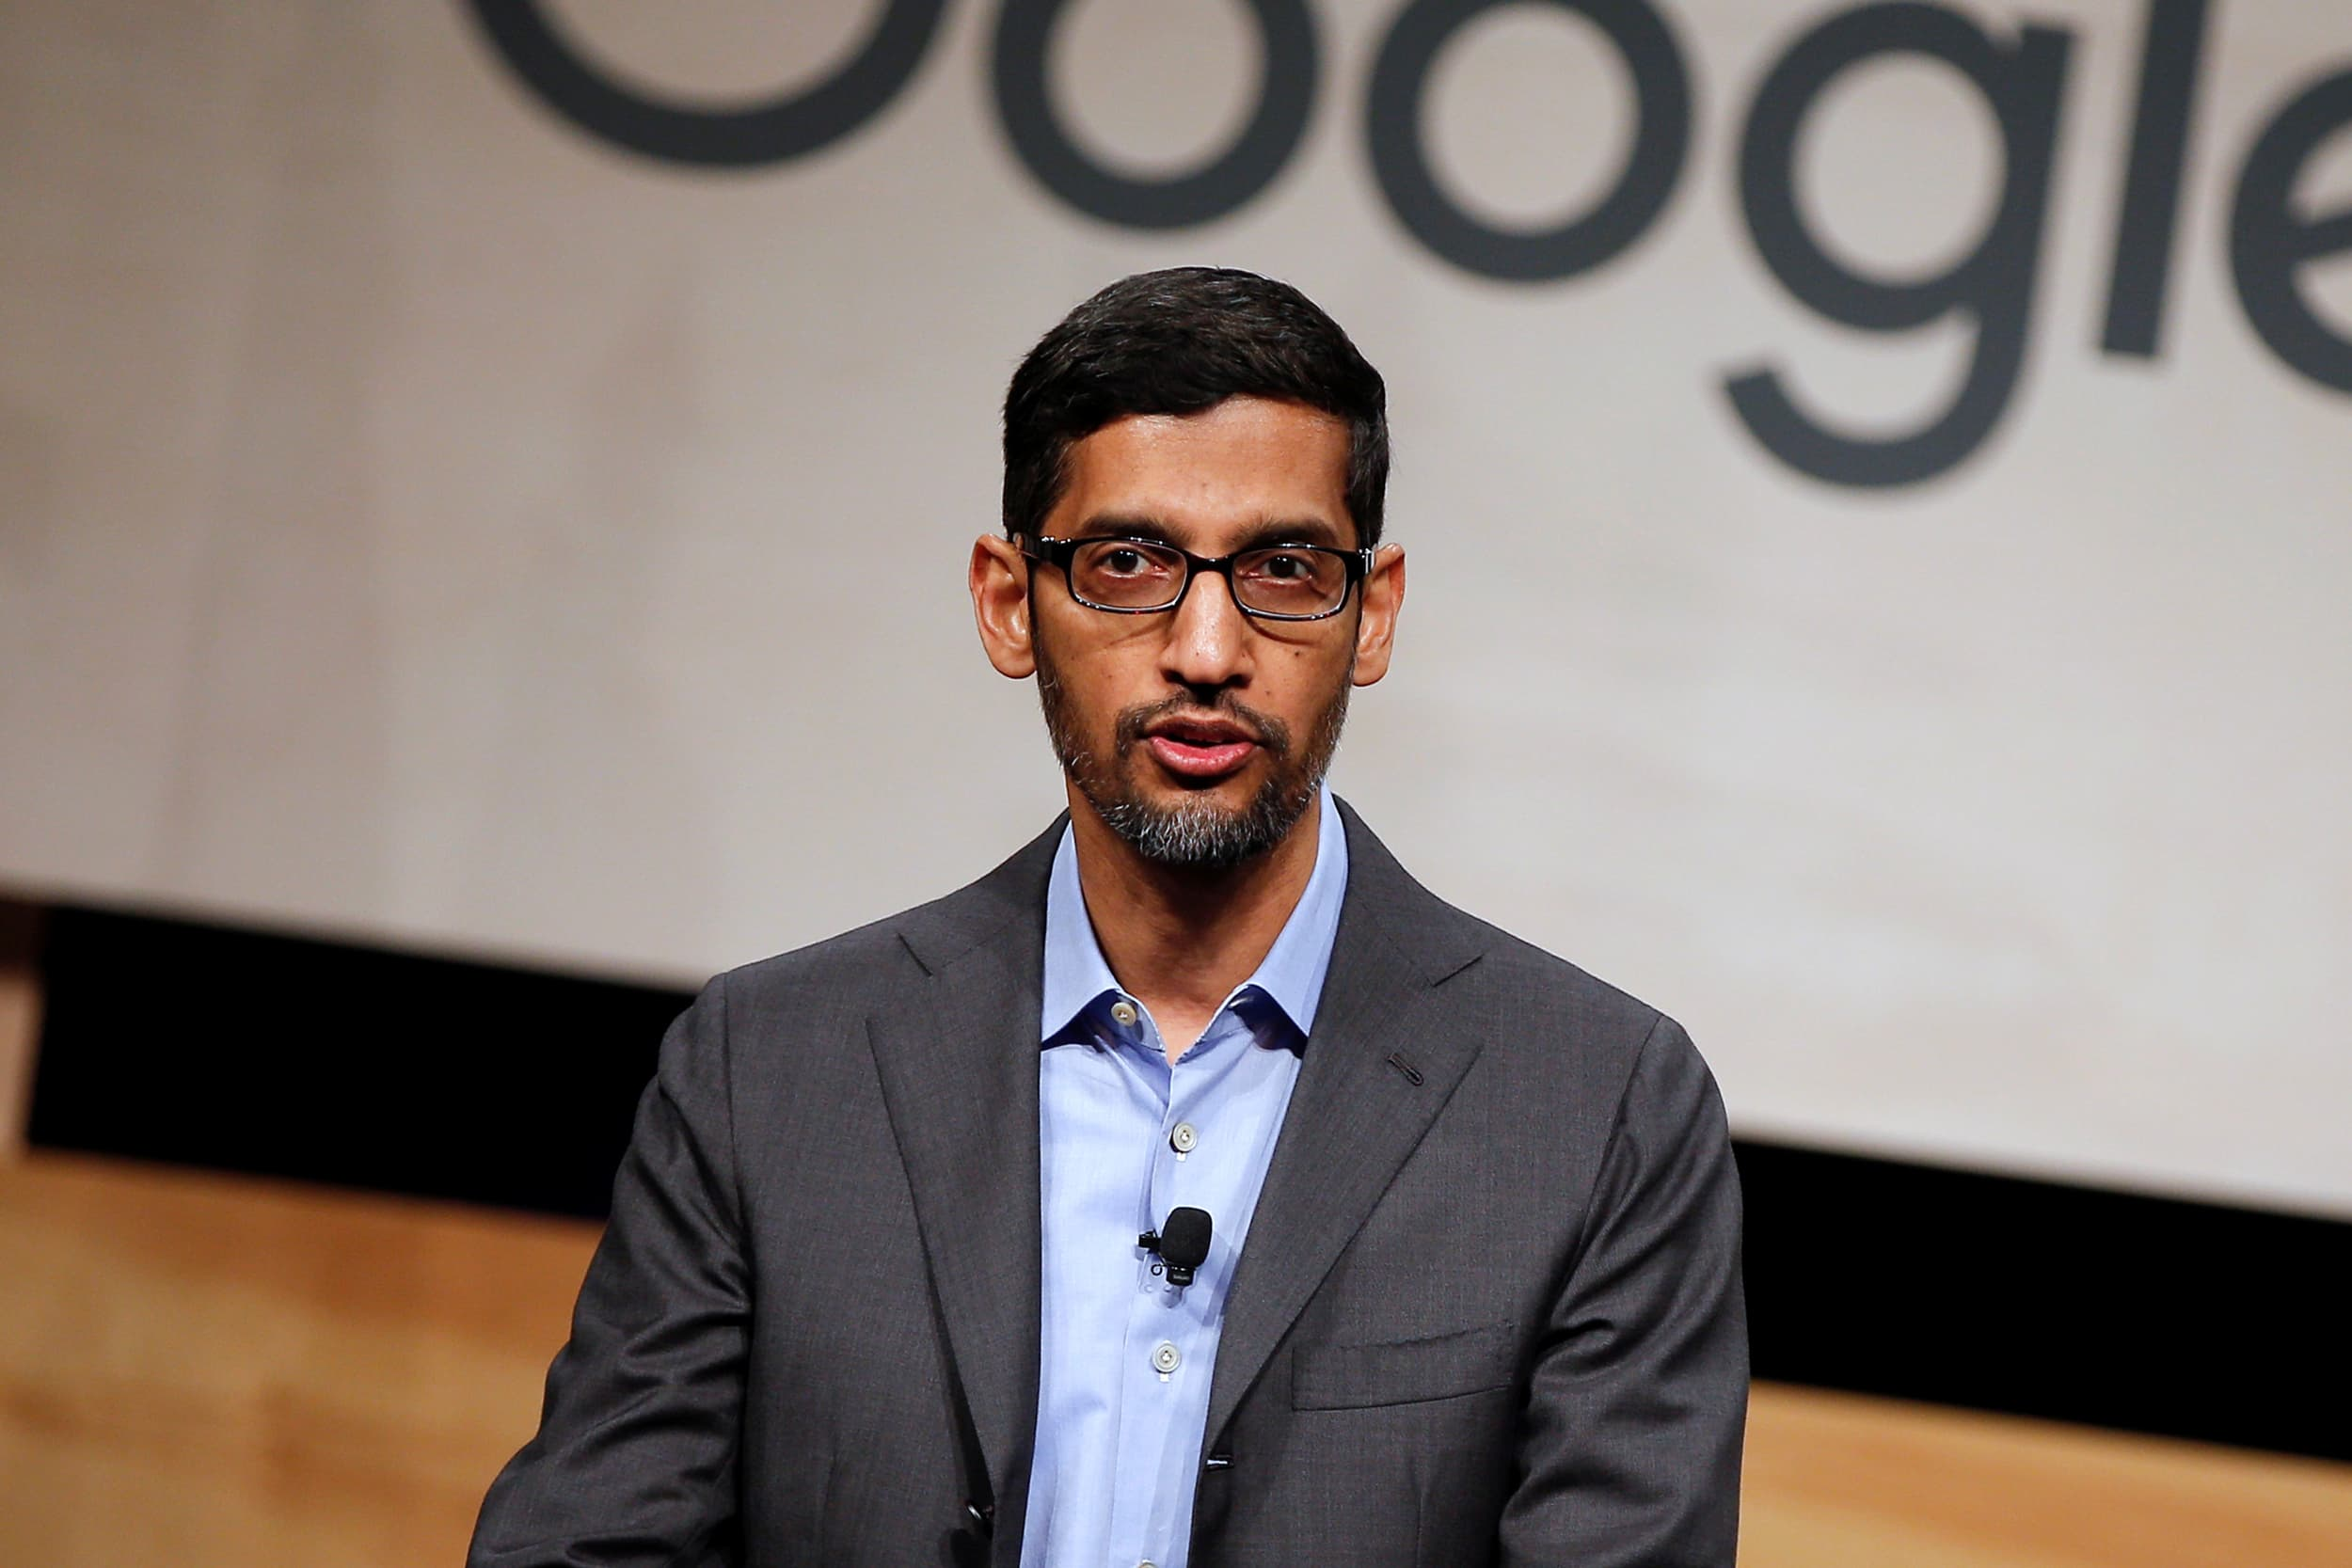 Alphabet gets two-month delay to reply to shareholder lawsuit over executive misconduct